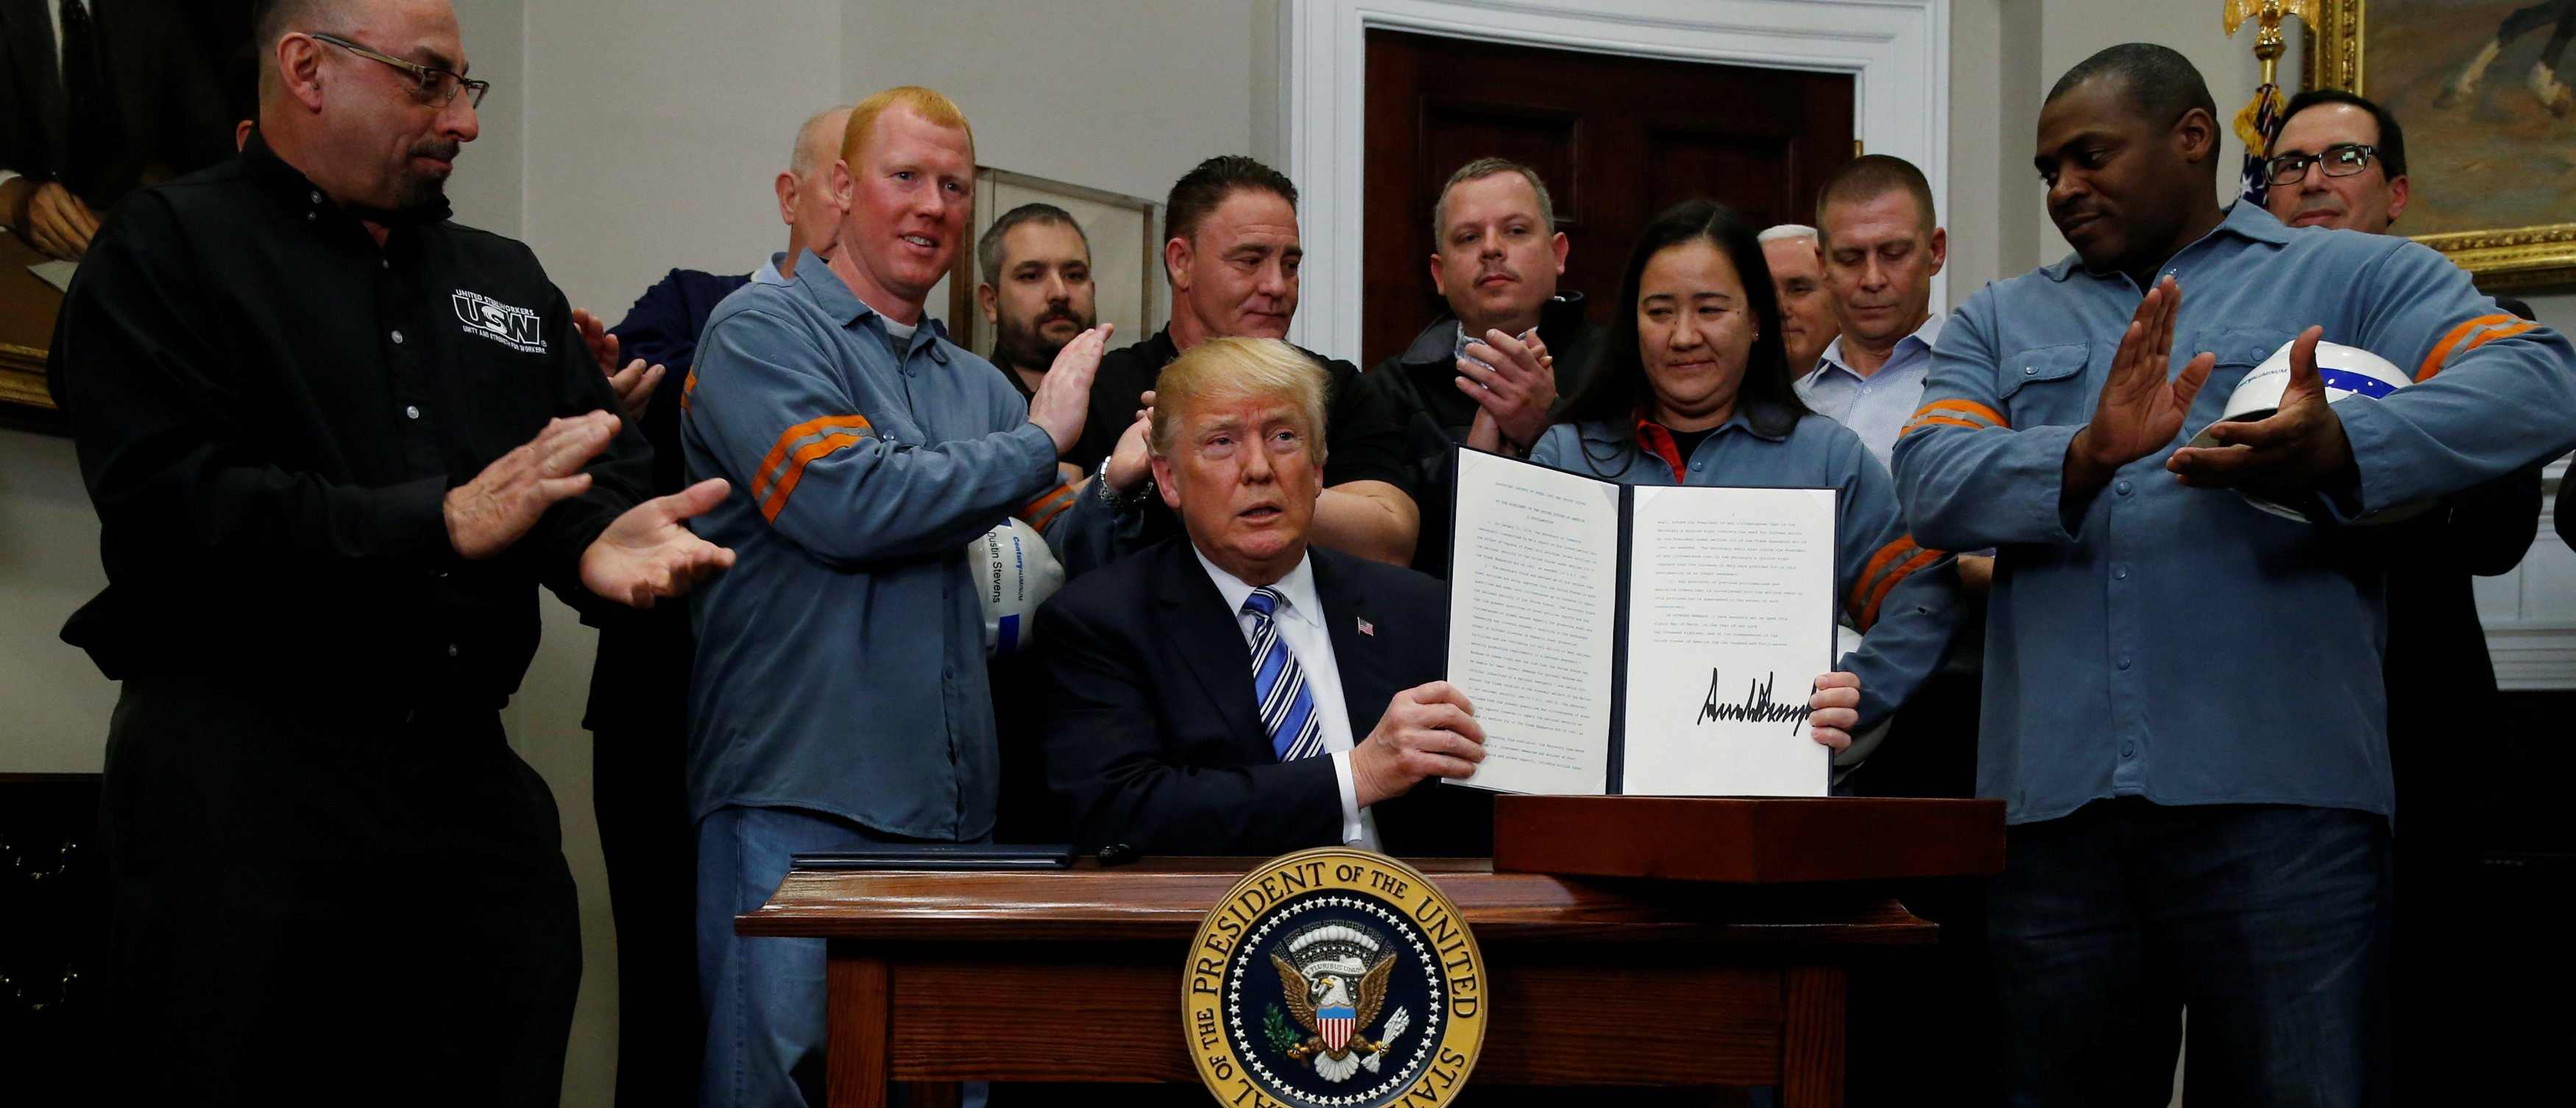 U.S. President Donald Trump is after signing a proclamation to establish tariffs on imports of steel and aluminum at the White House in Washington, U.S., March 8, 2018. REUTERS/Leah Millis